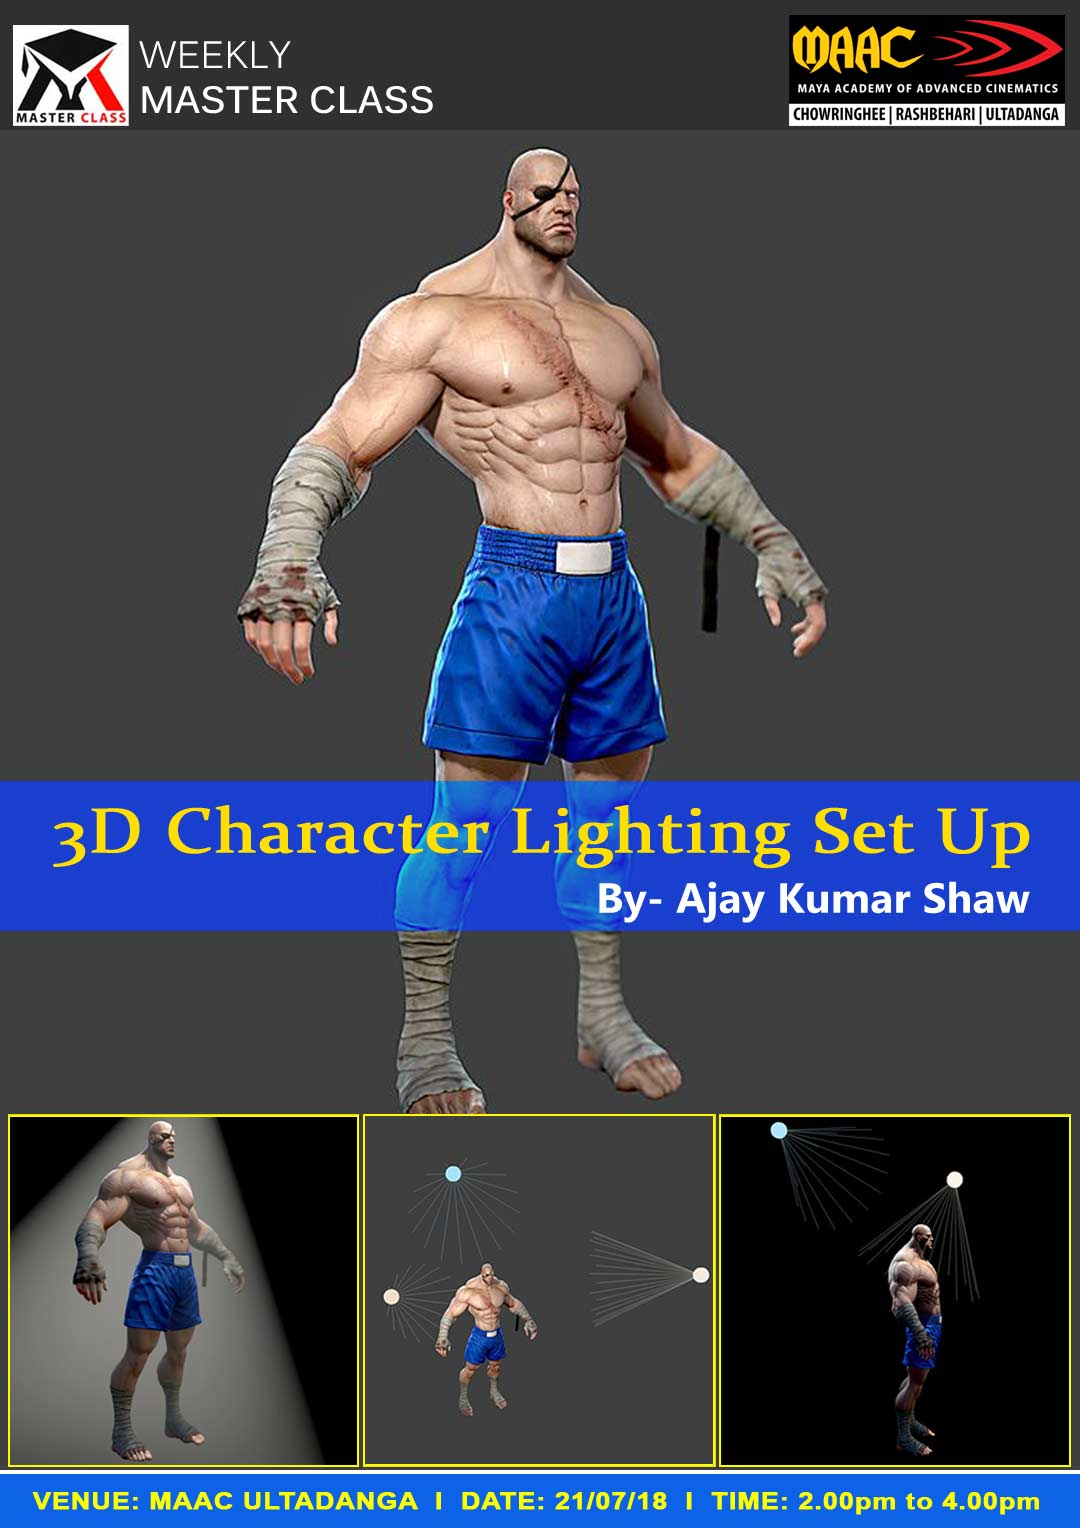 Weekly Master Class on 3D Character Lighting Set Up